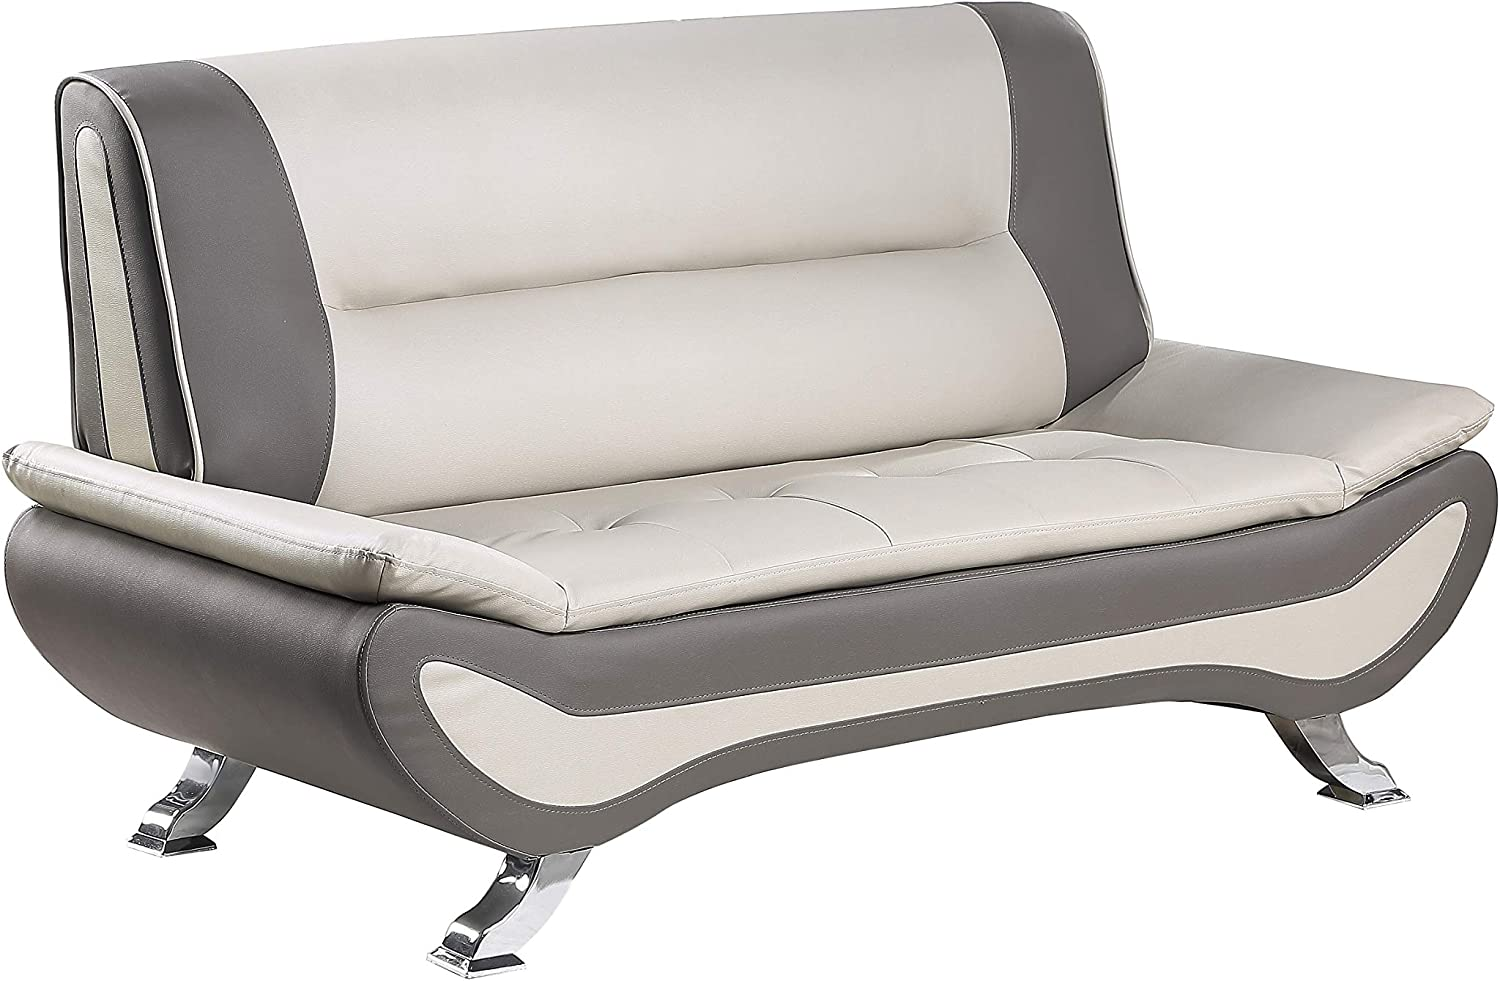 Best Loveseat: The Best Lexicon Later loveseat couch.